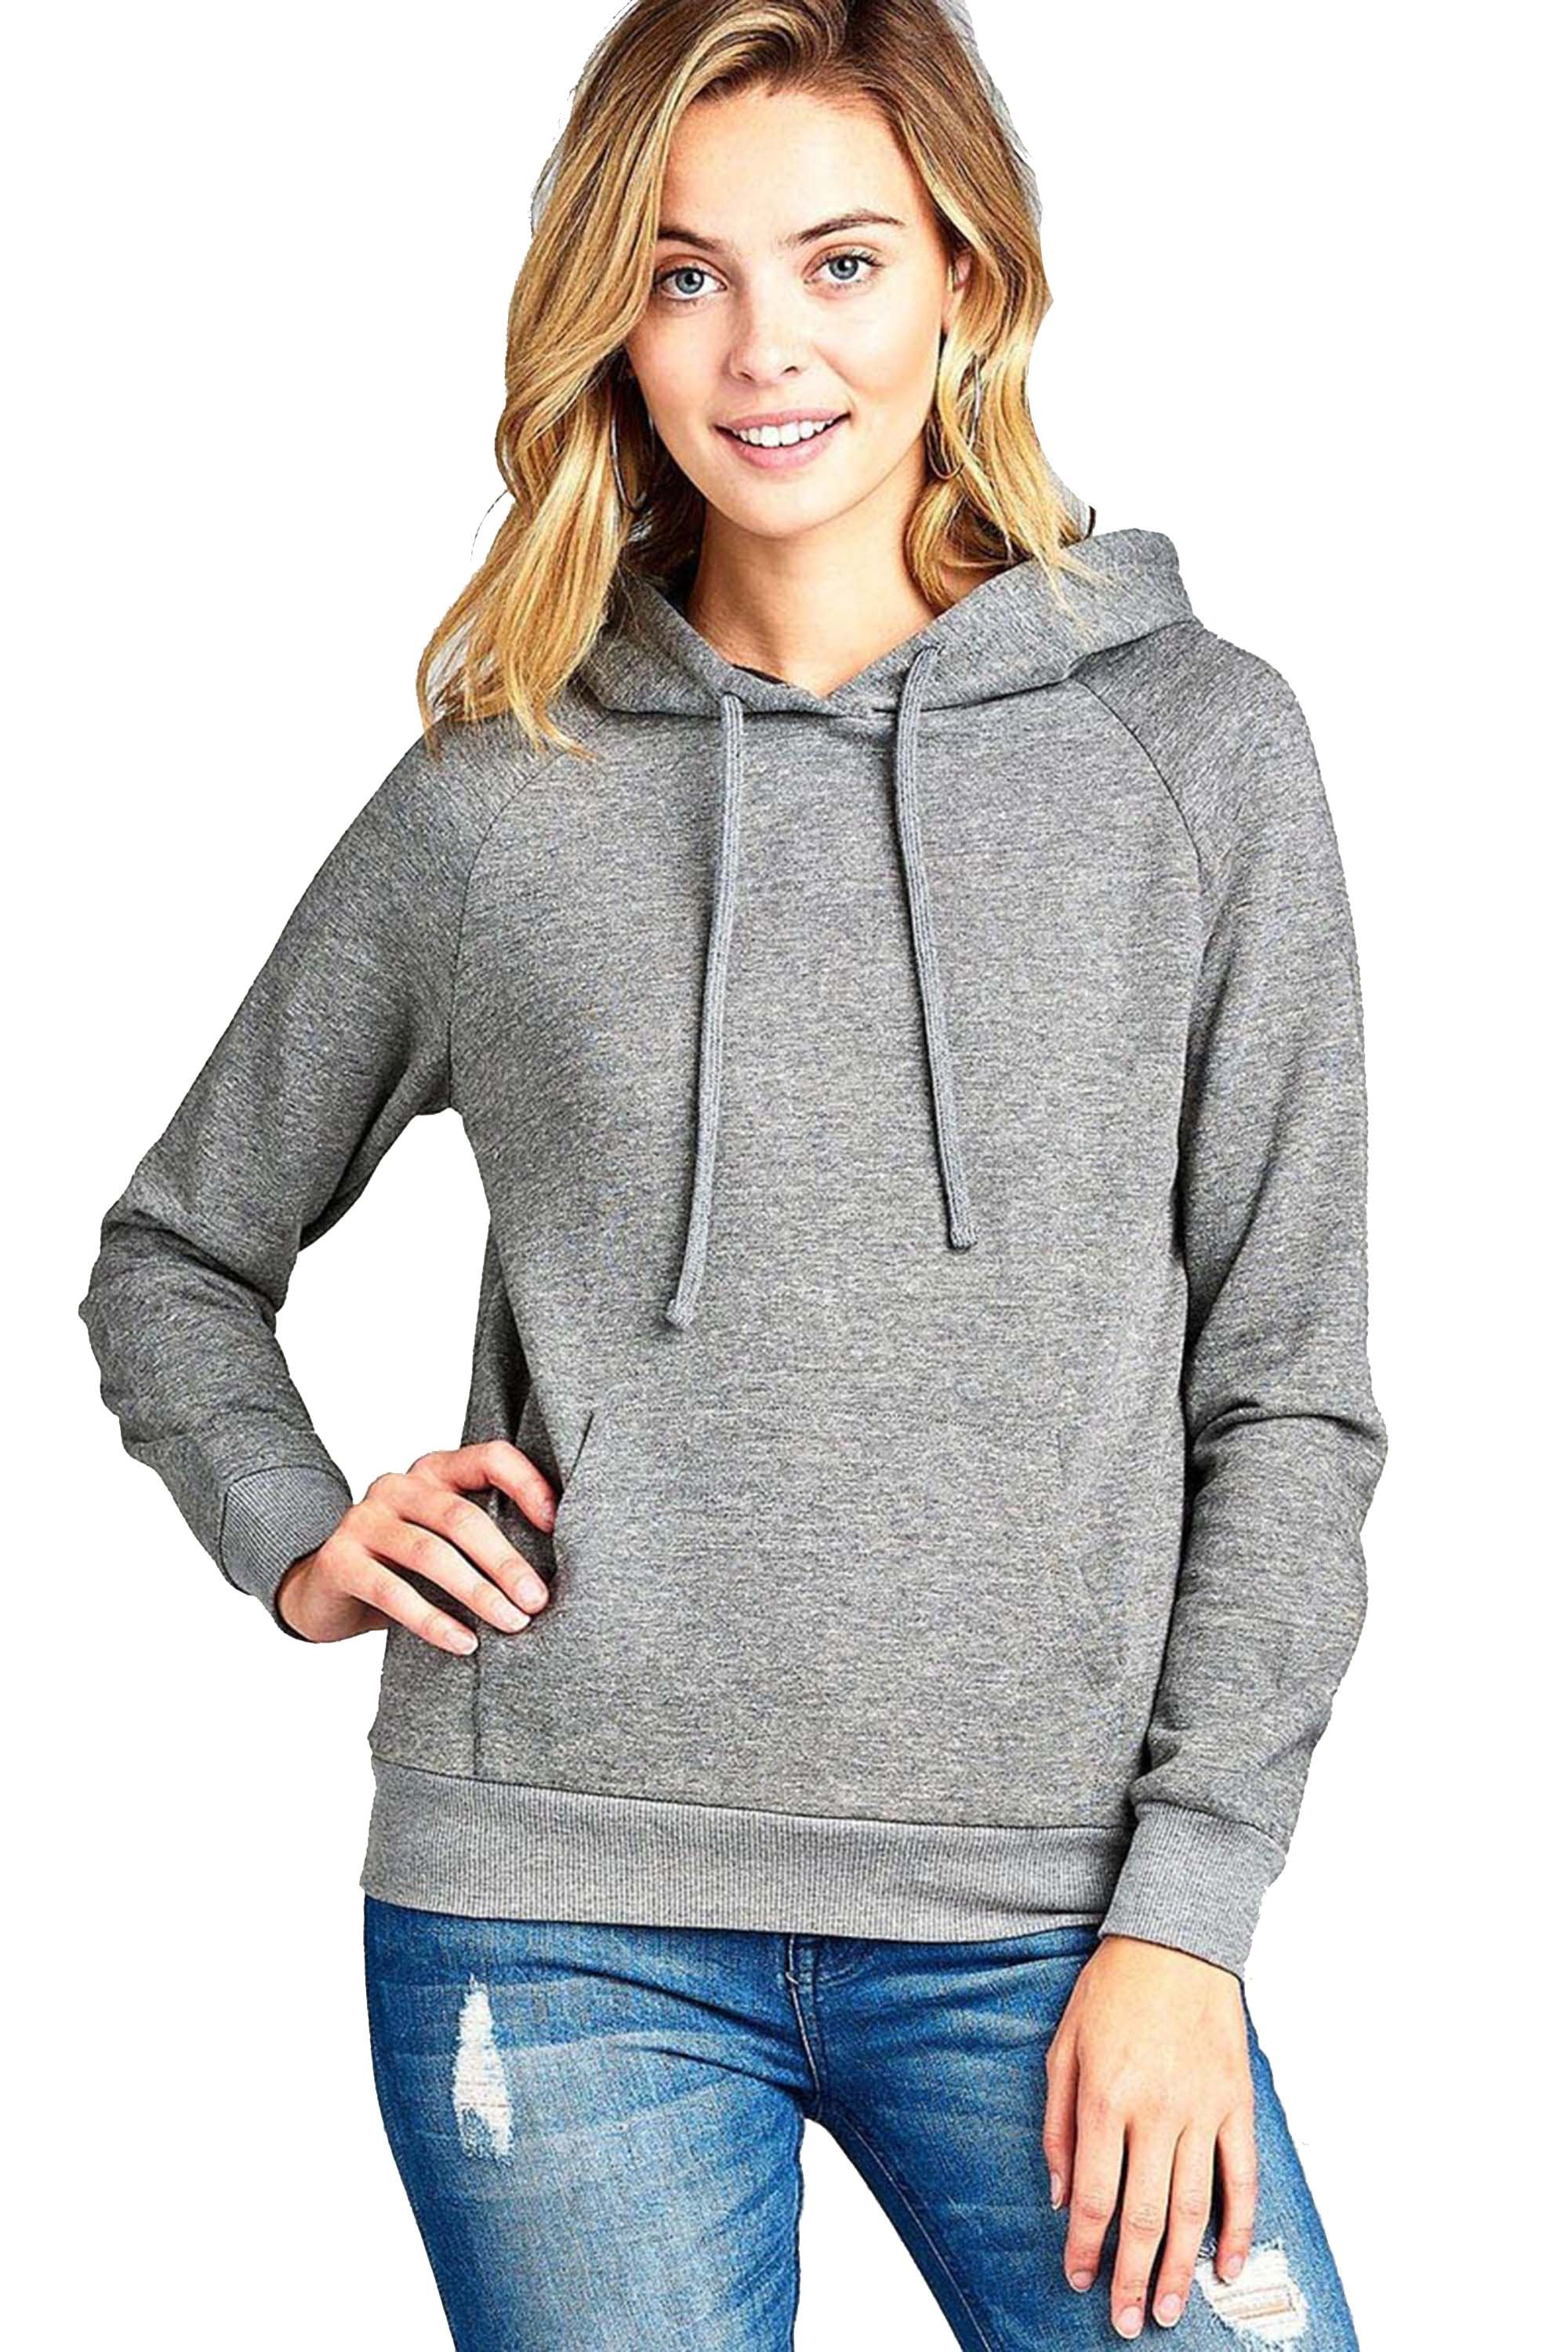 Khanomak Women's Long Sleeve Brushed Pullover Hooded Sweatshirt